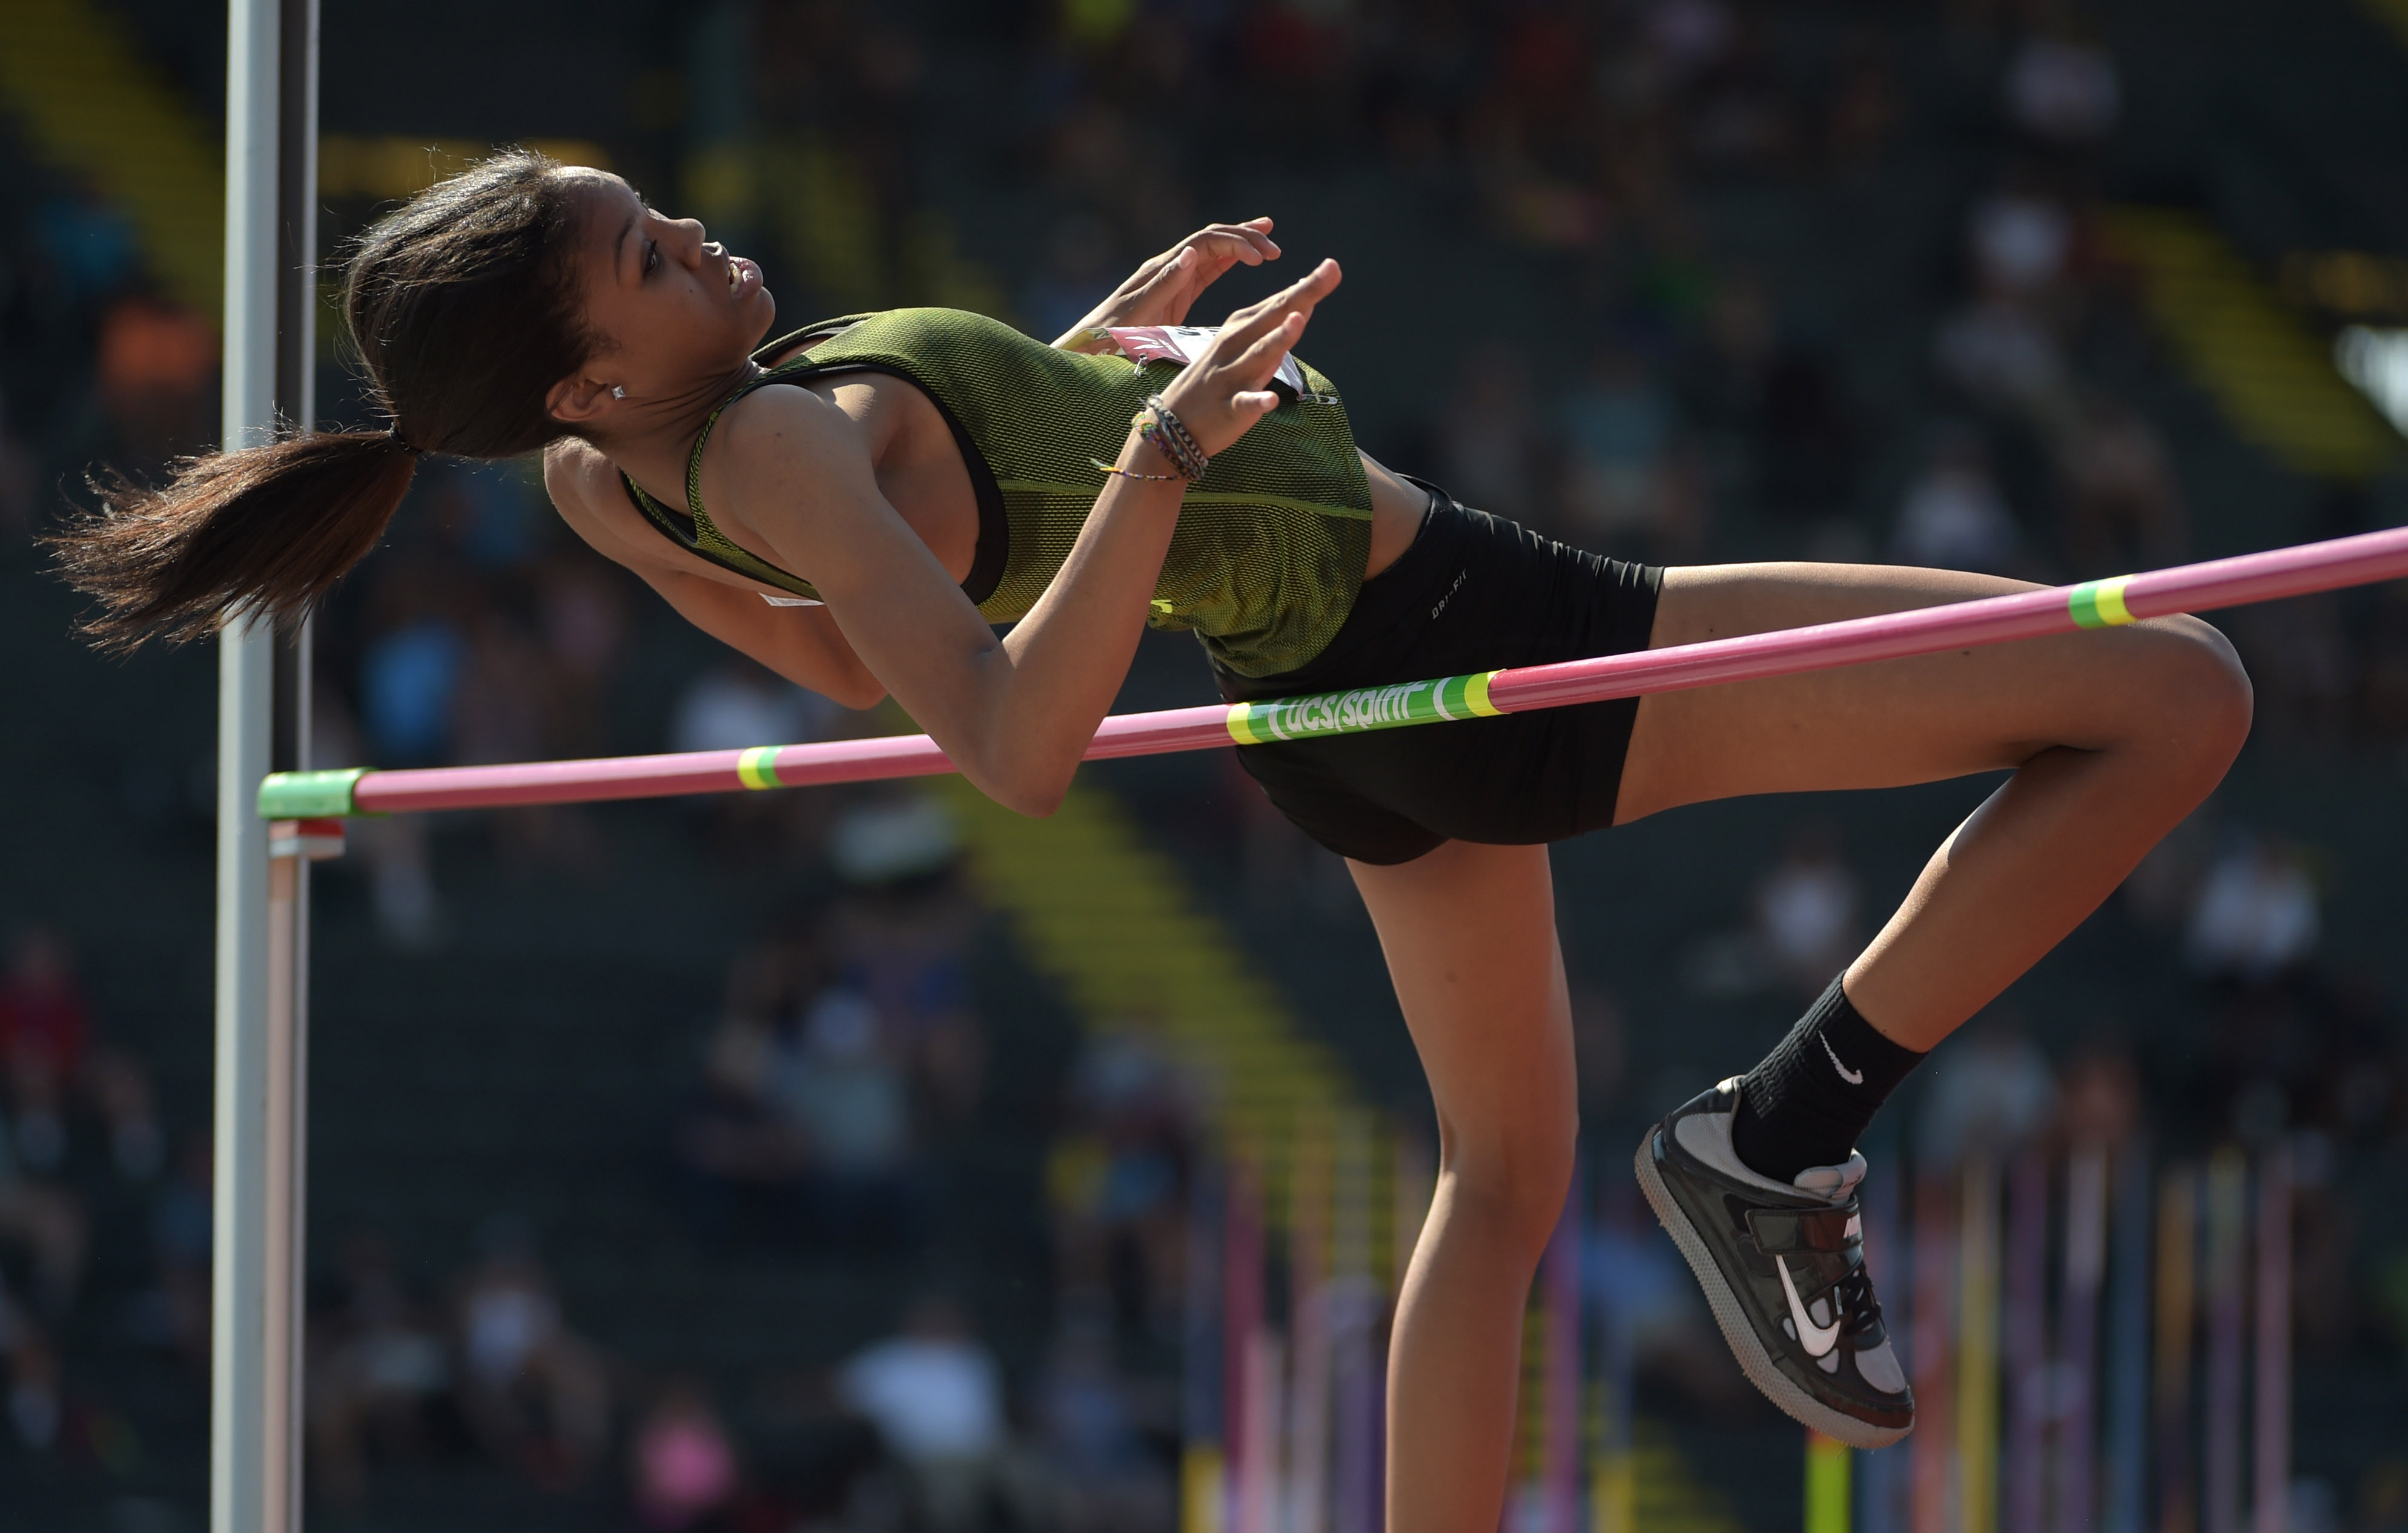 Vashti Cunningham, shown at the USA Championships in July, set a national high school record Saturday. (Photo: Kirby Lee, USA TODAY Sports)